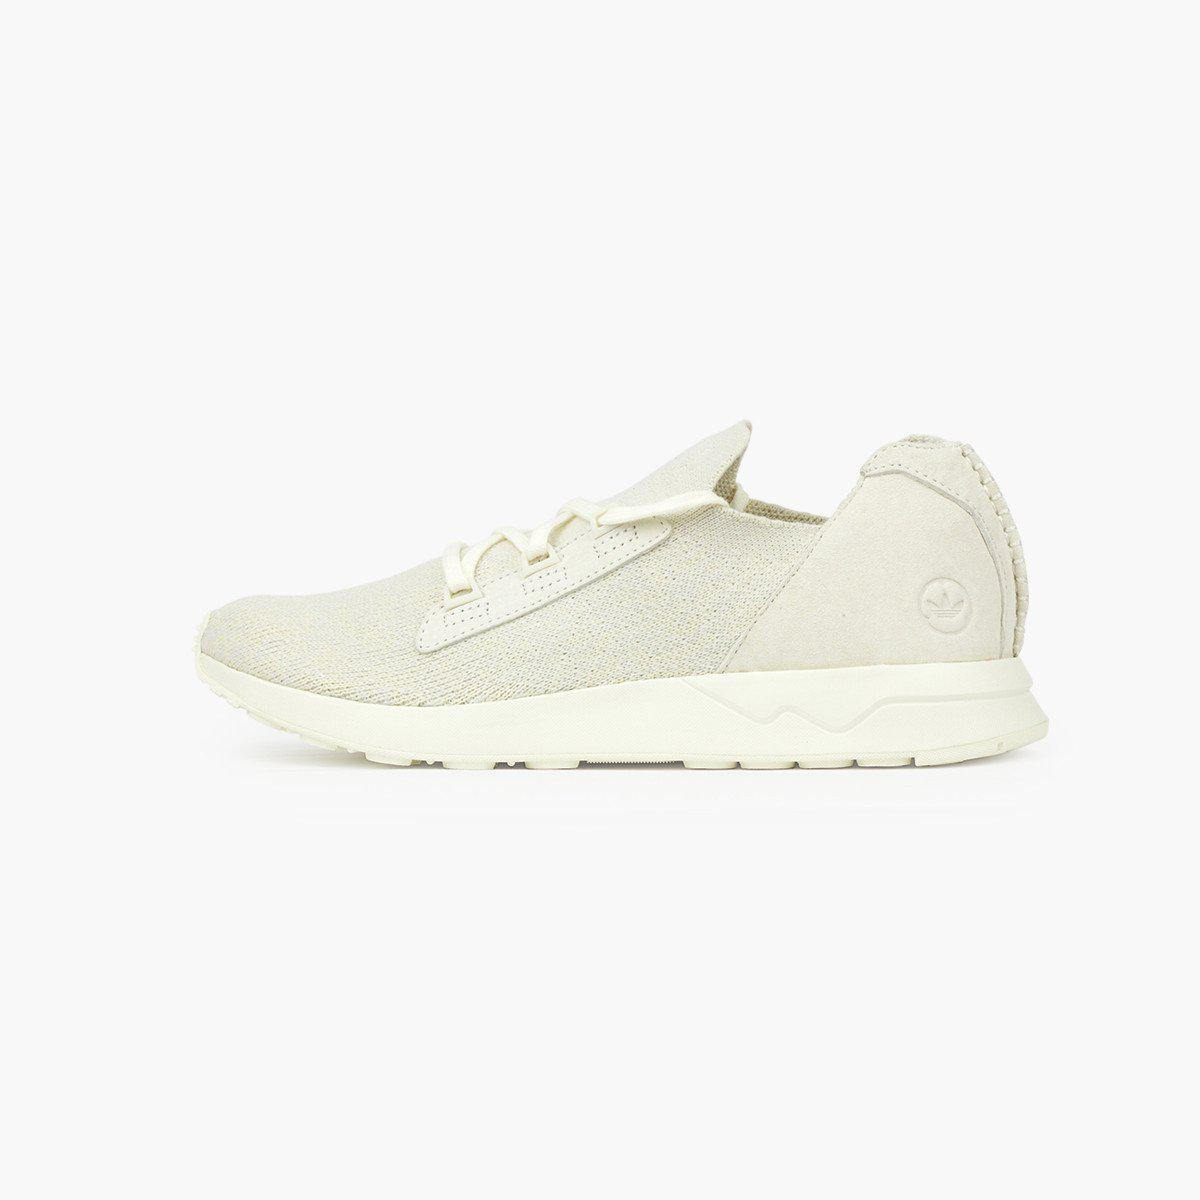 0406a81c3 adidas Originals Adidas Wh Zx Flux X Pk in White - Lyst